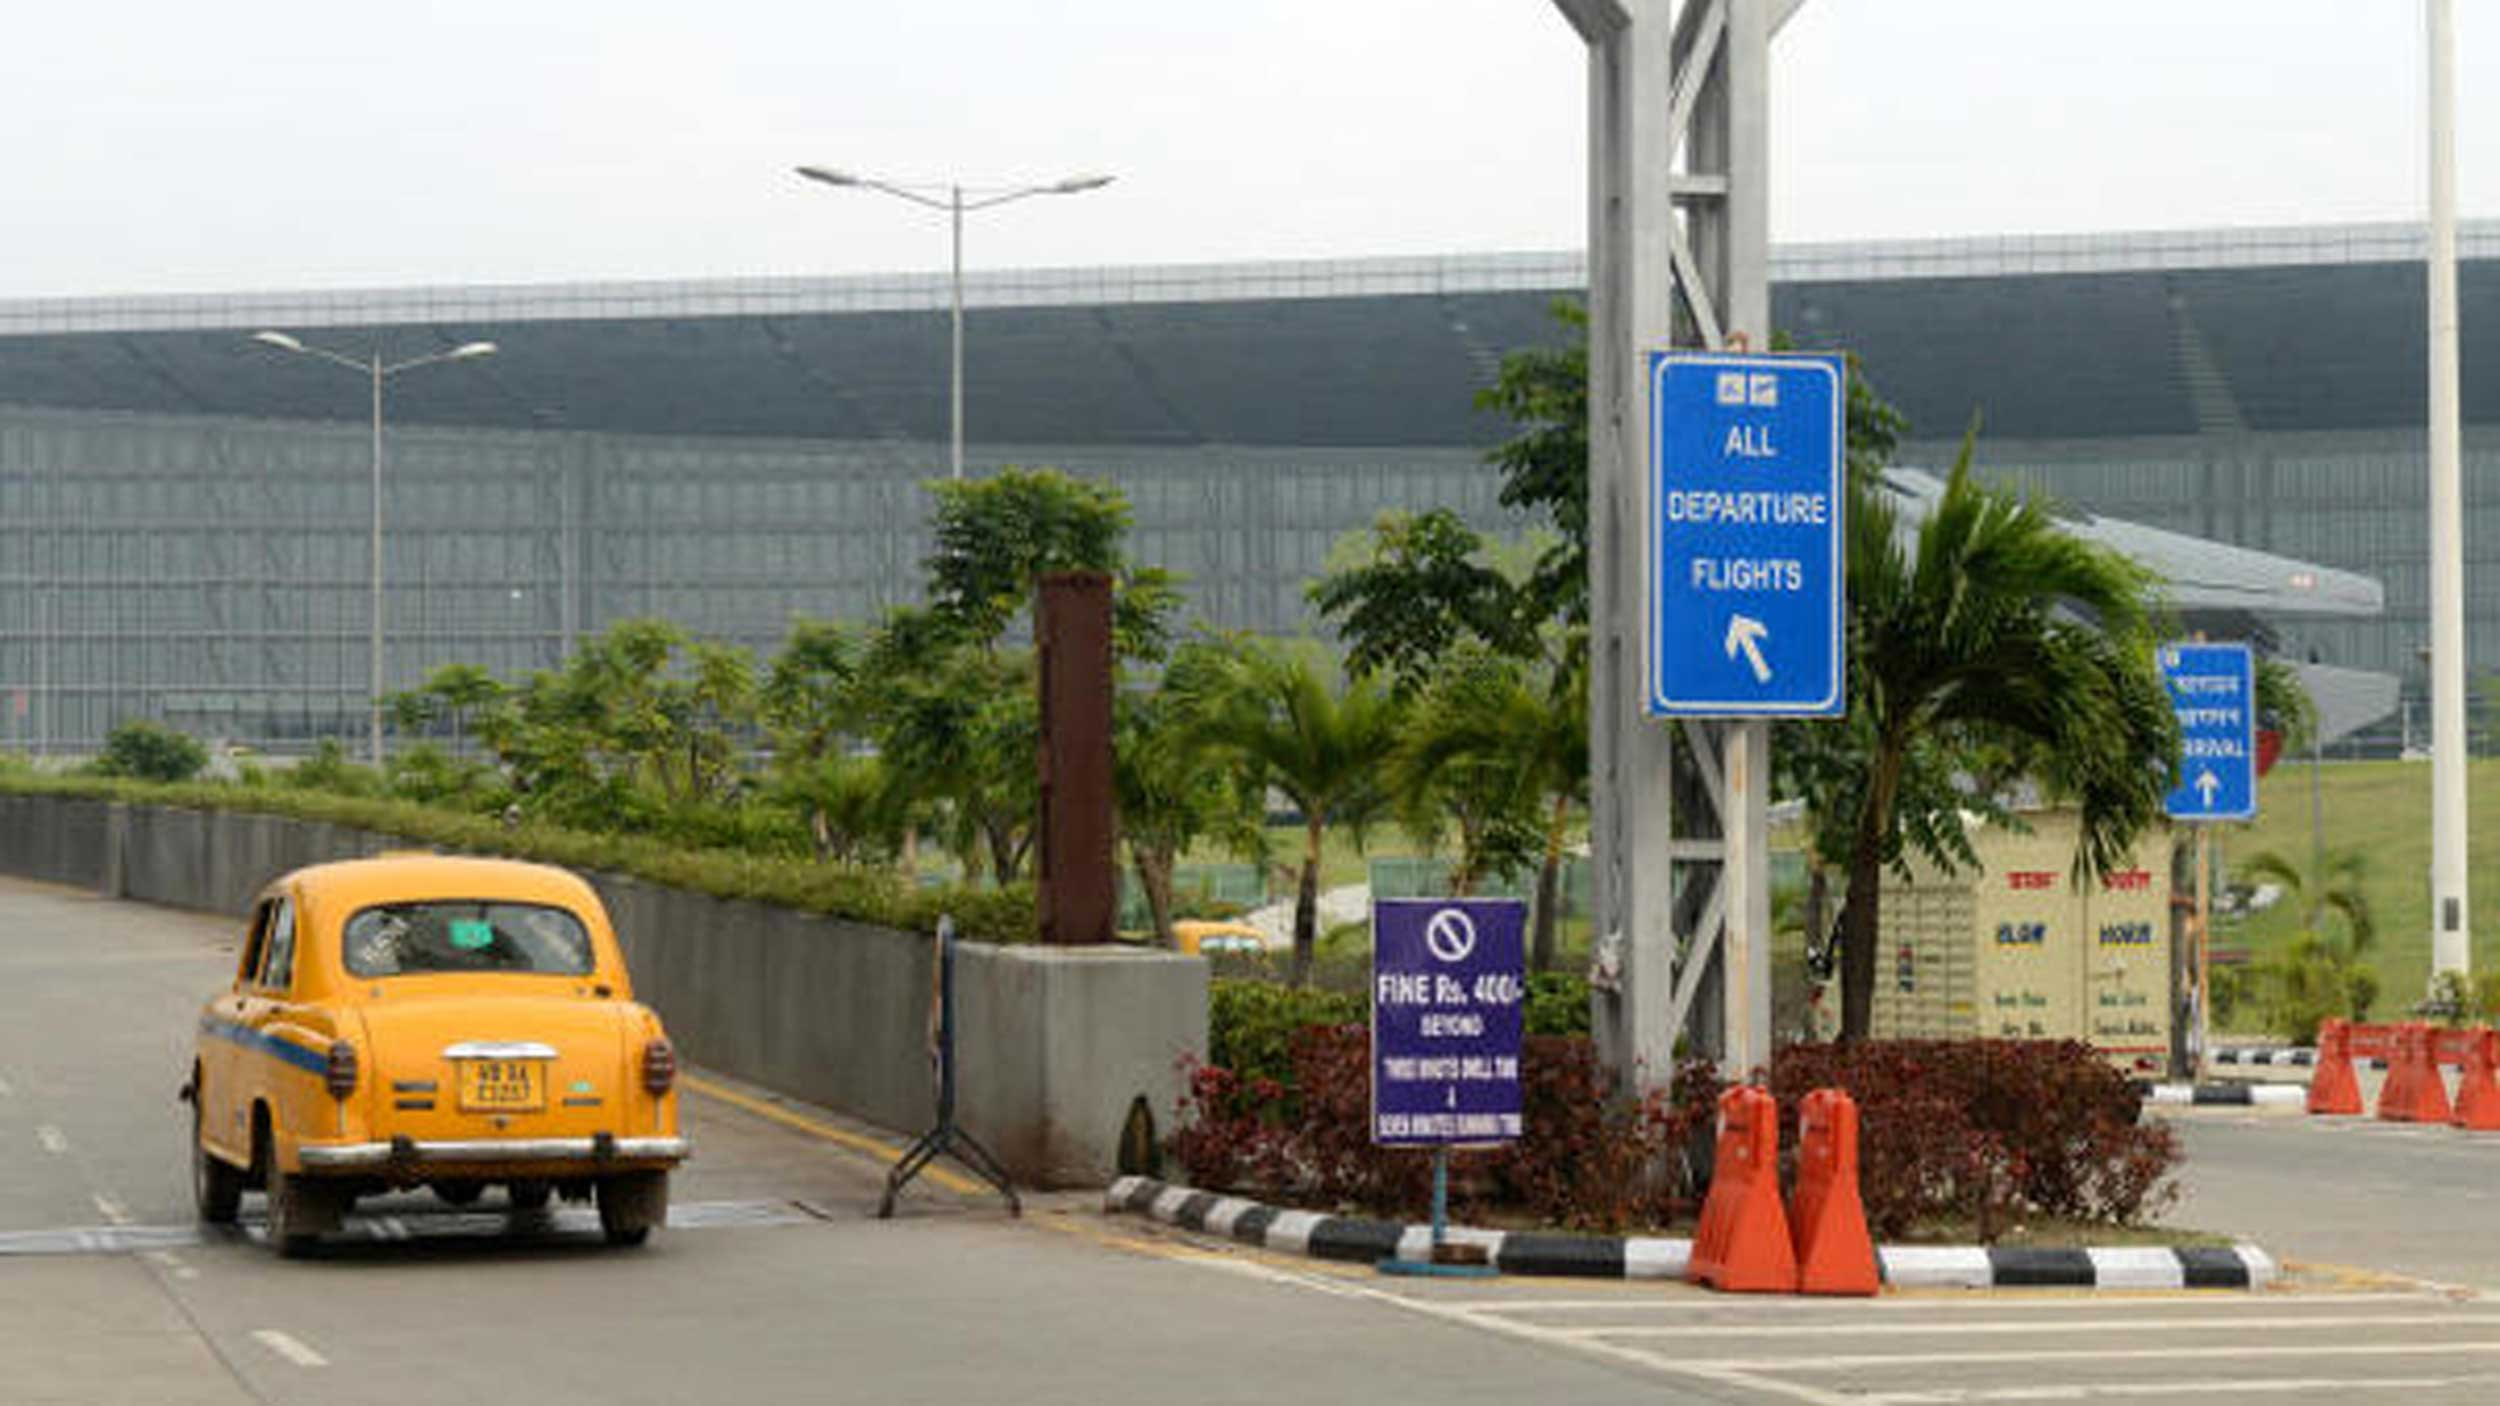 The gate would open automatically for the passenger once the code was provided at the entrance of Netaji Subhas Chandra Bose International Airport